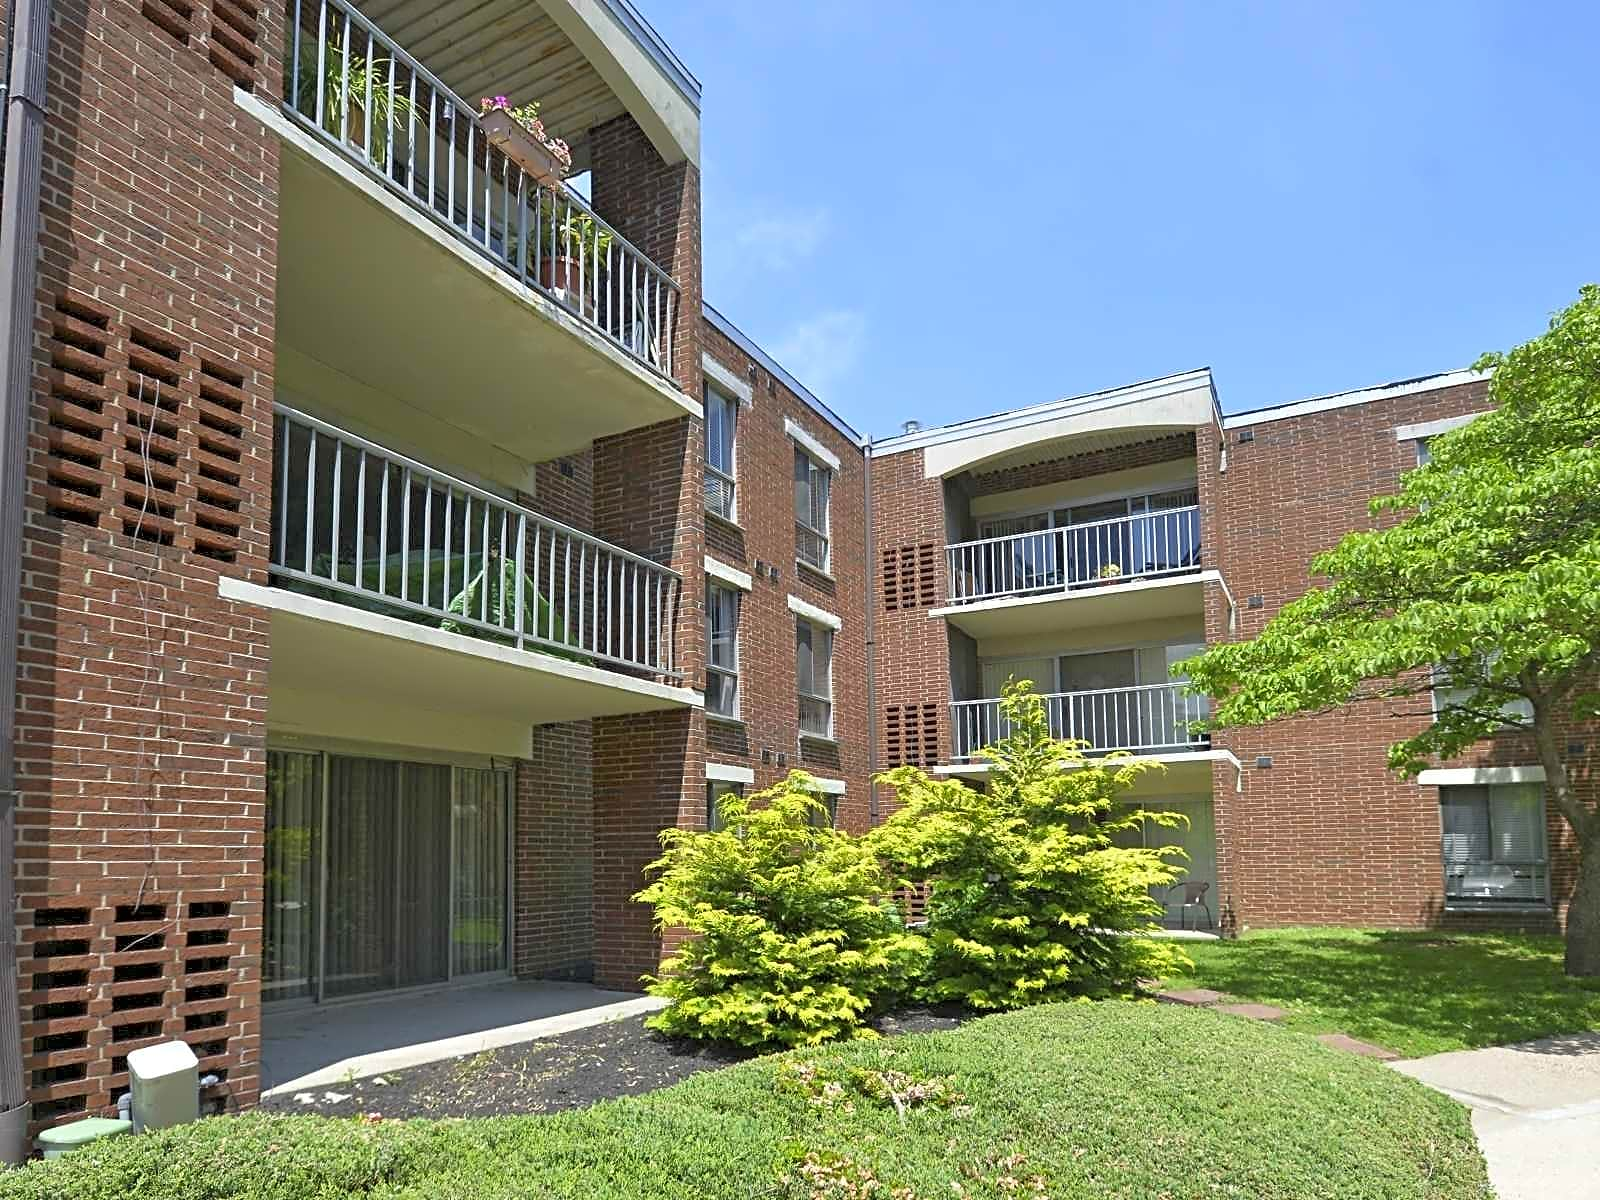 Apartments Near PCOM Greenbriar Club for Philadelphia College of Osteopathic Medicine Students in Philadelphia, PA